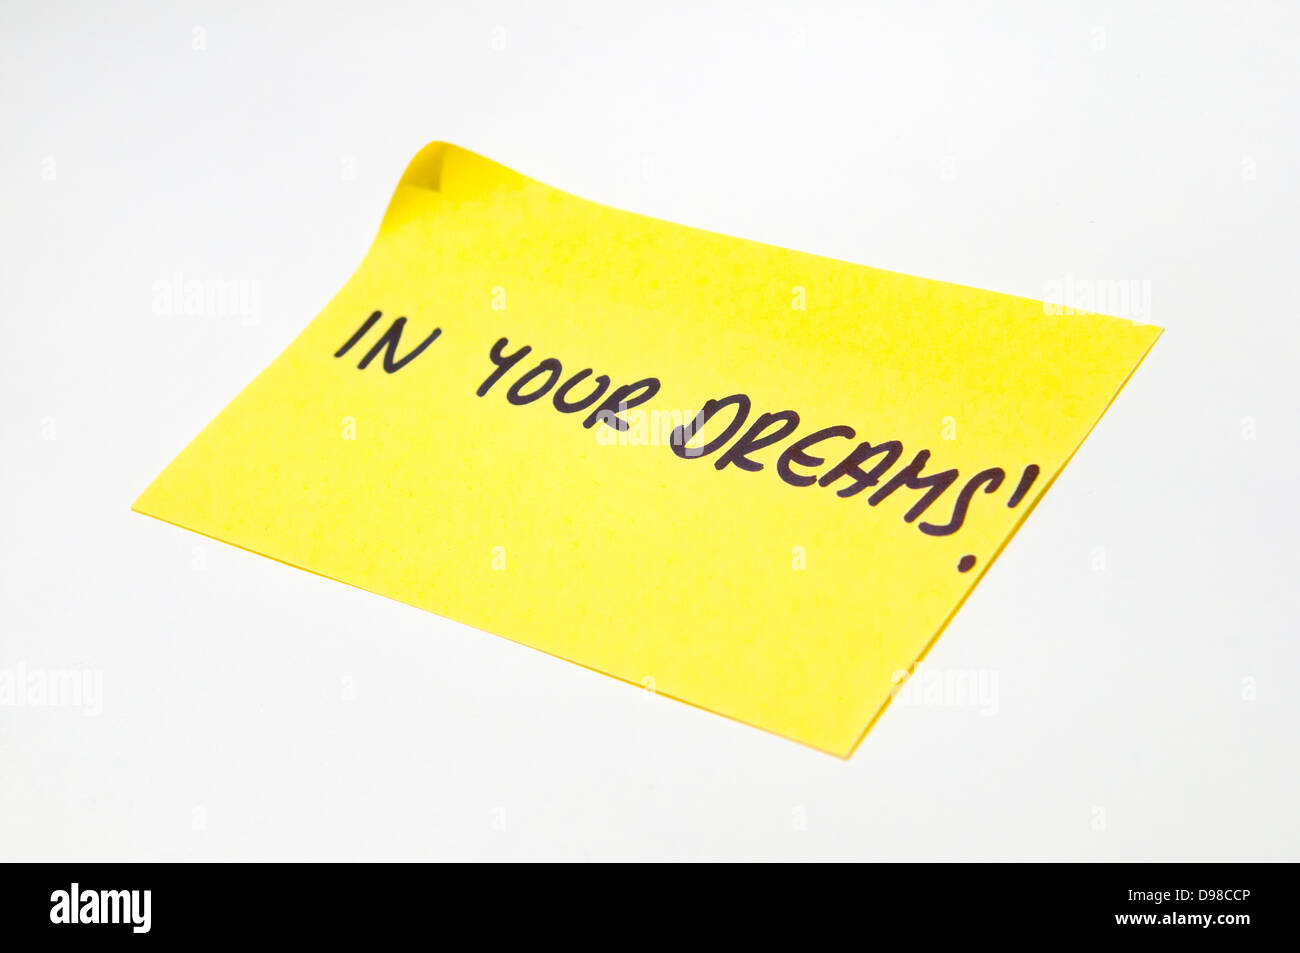 'In Your Dreams' written on a yellow post it note - Stock Image